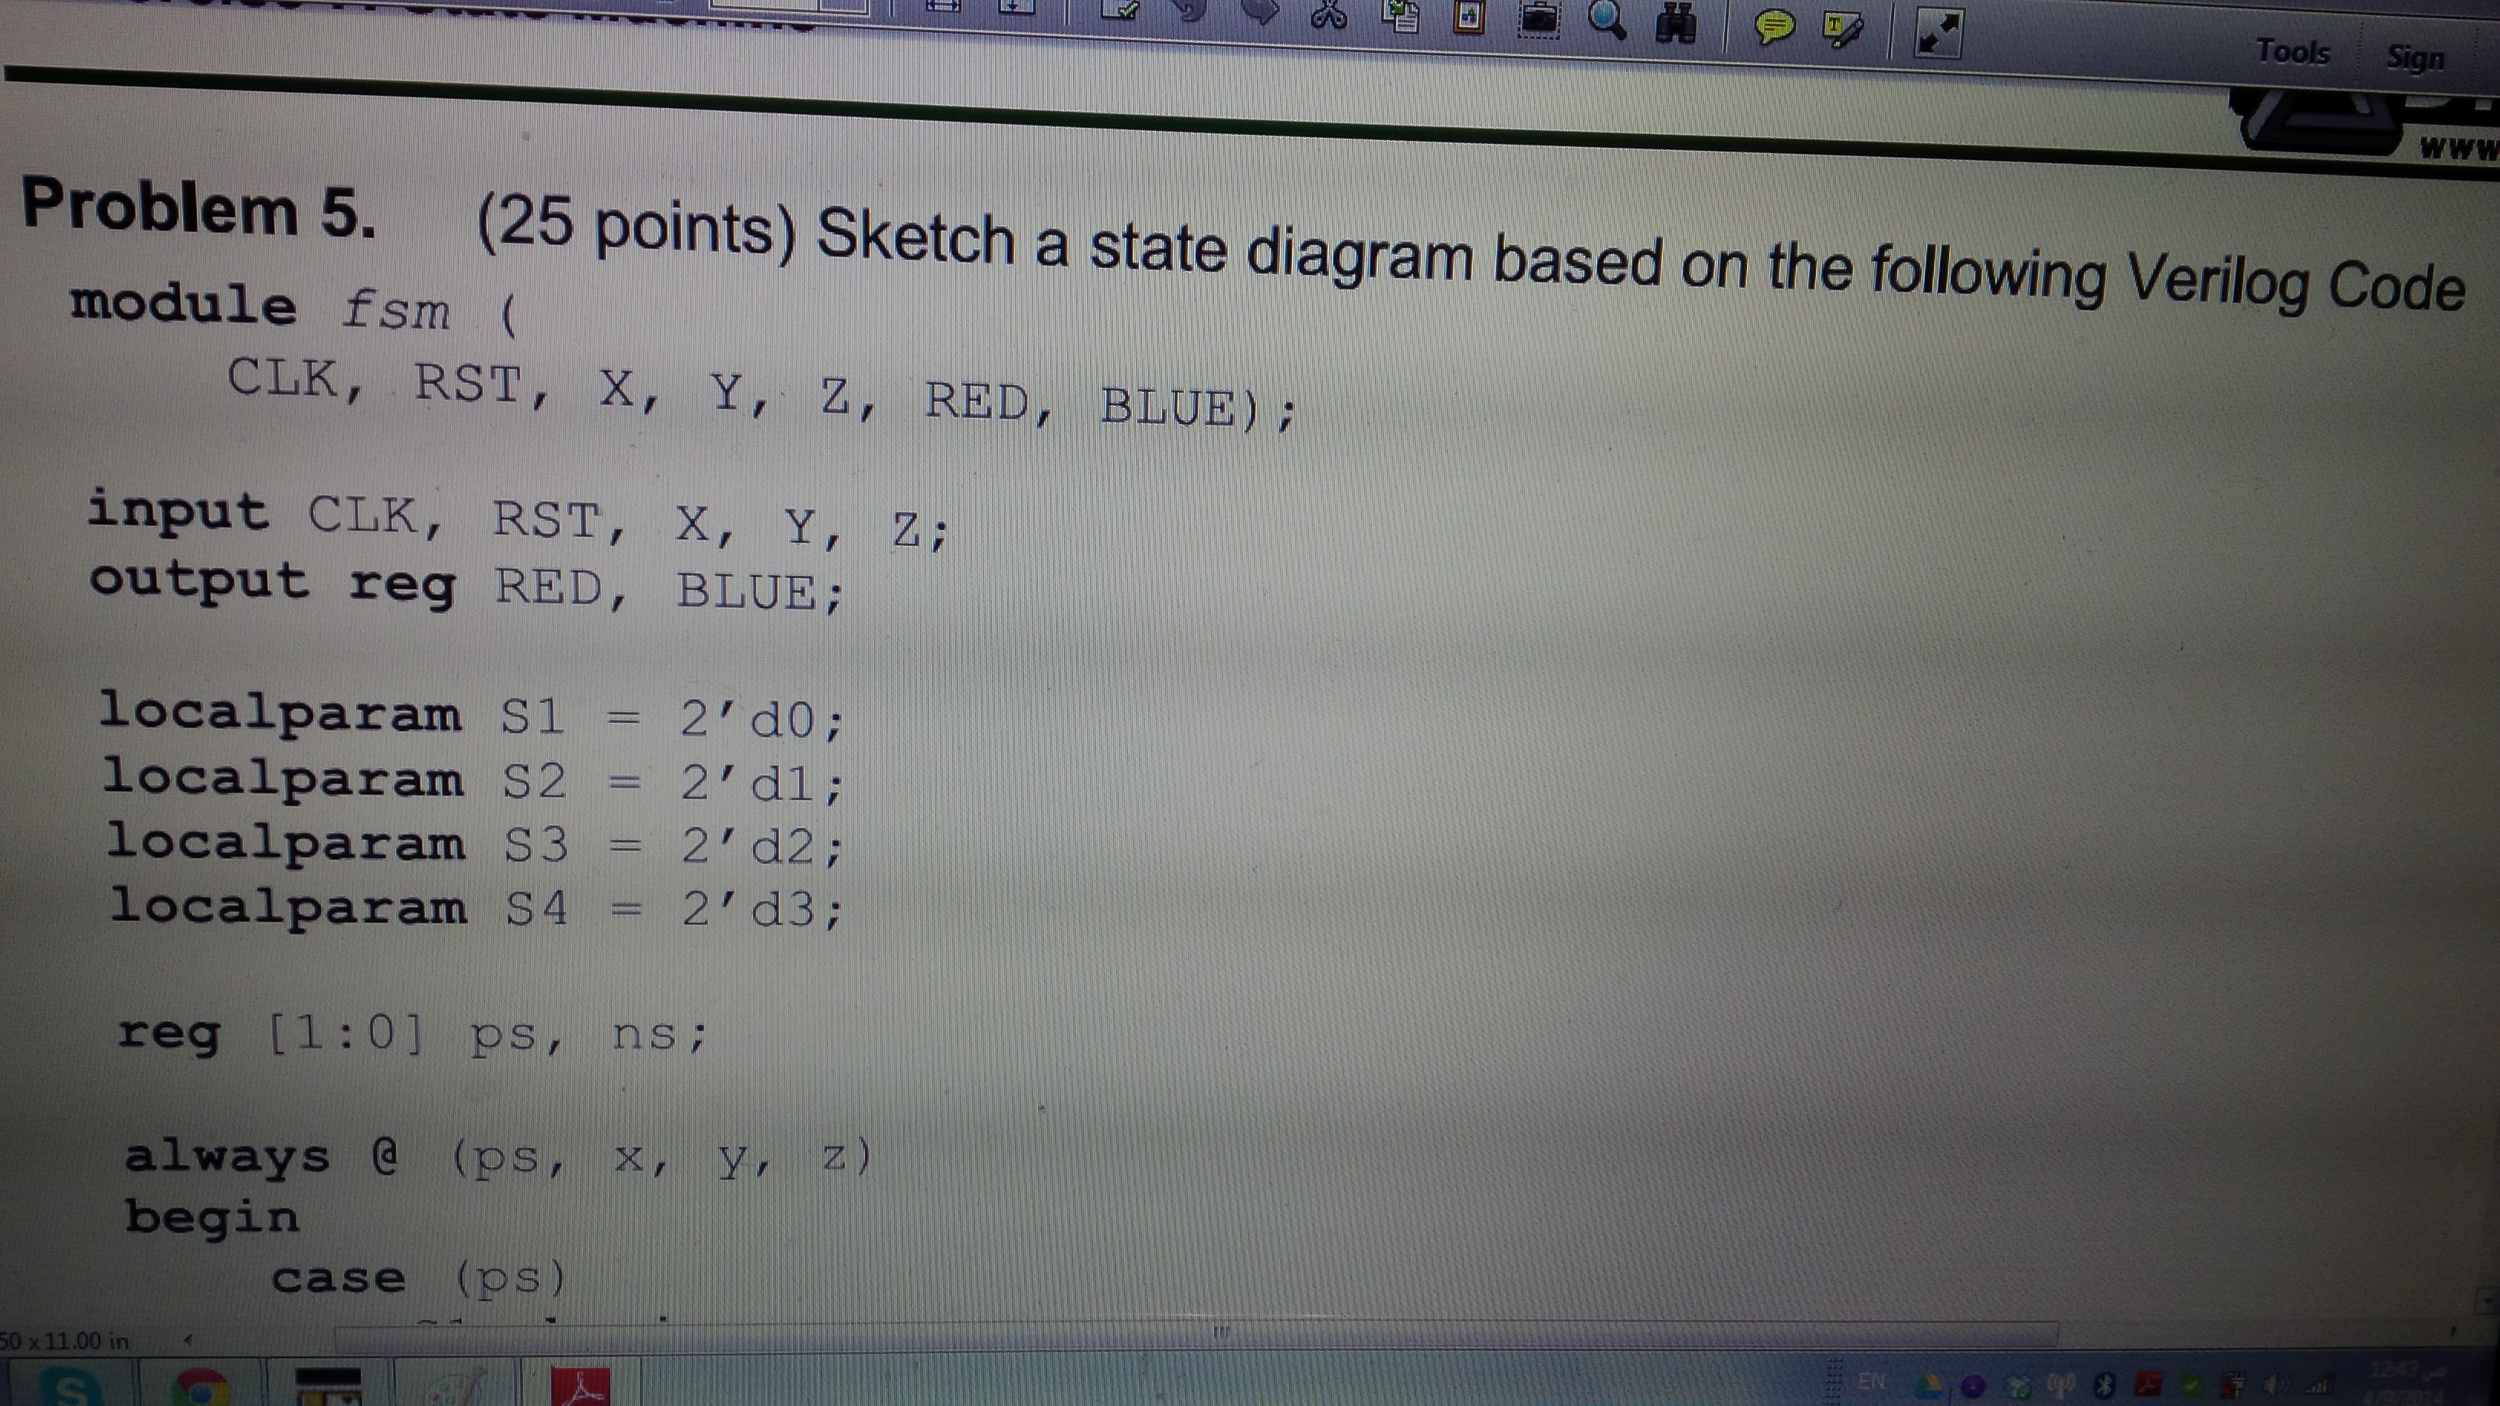 Sketch a state diagram based on the following Veri